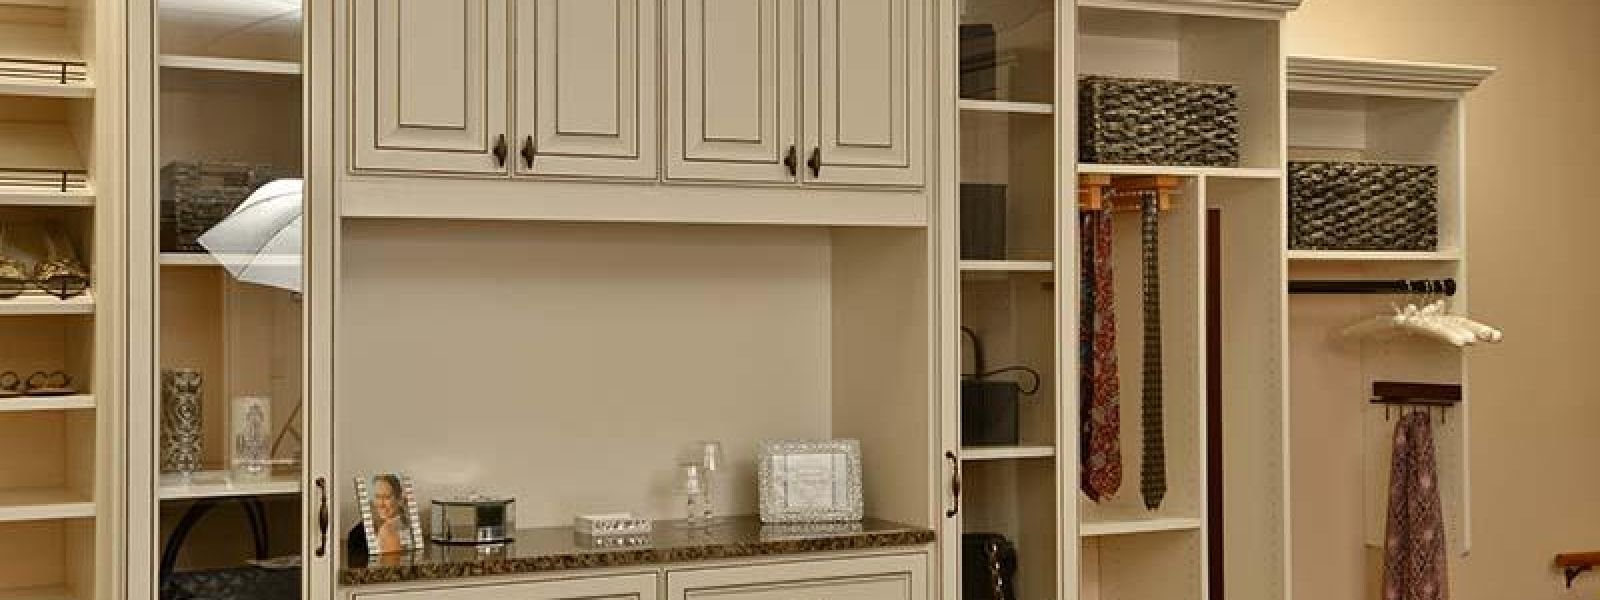 Closet Shelving Can Make All the Difference